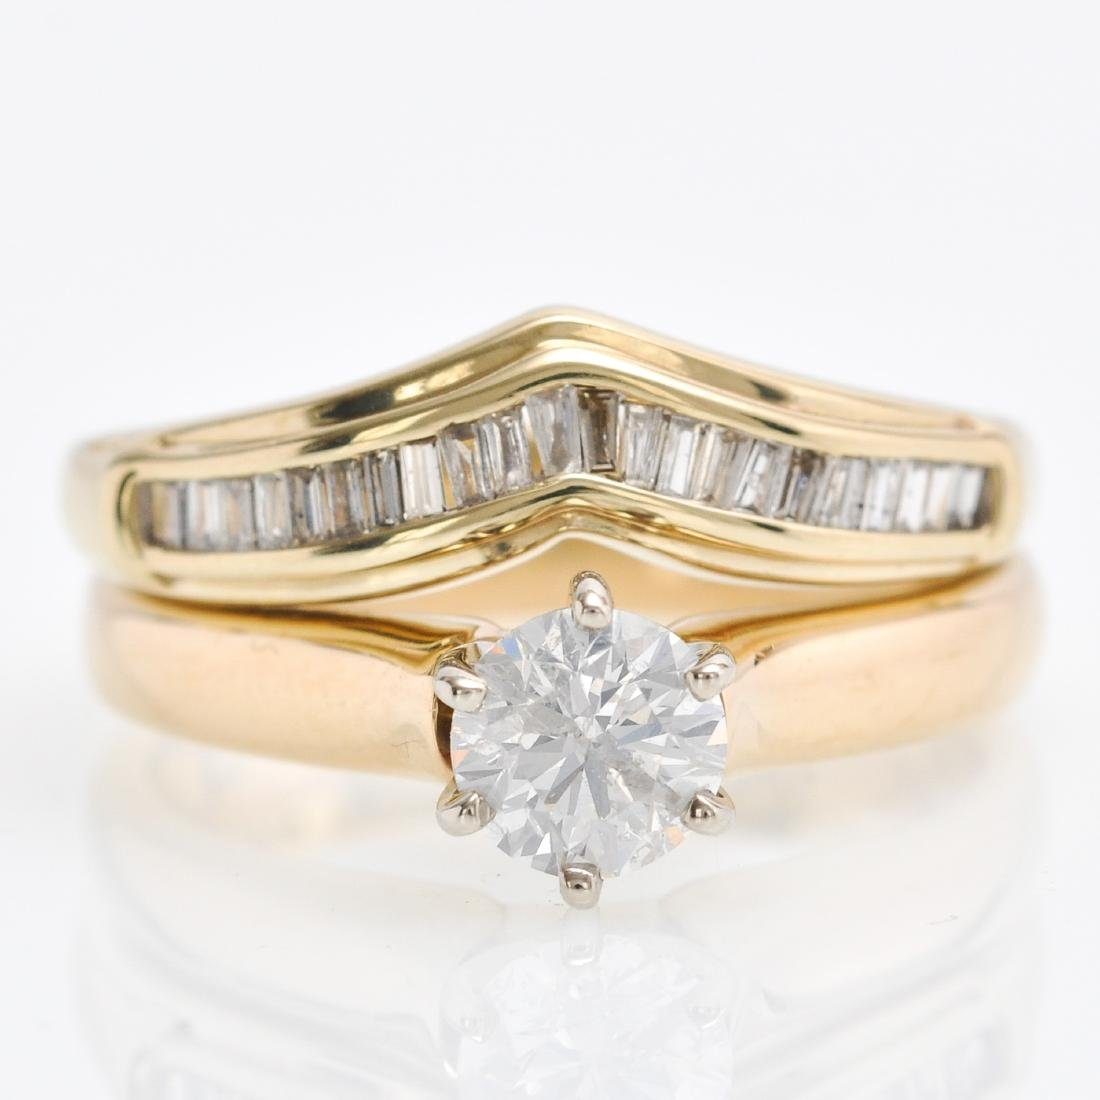 A 14KG and 10KG Ladies Diamond Ring